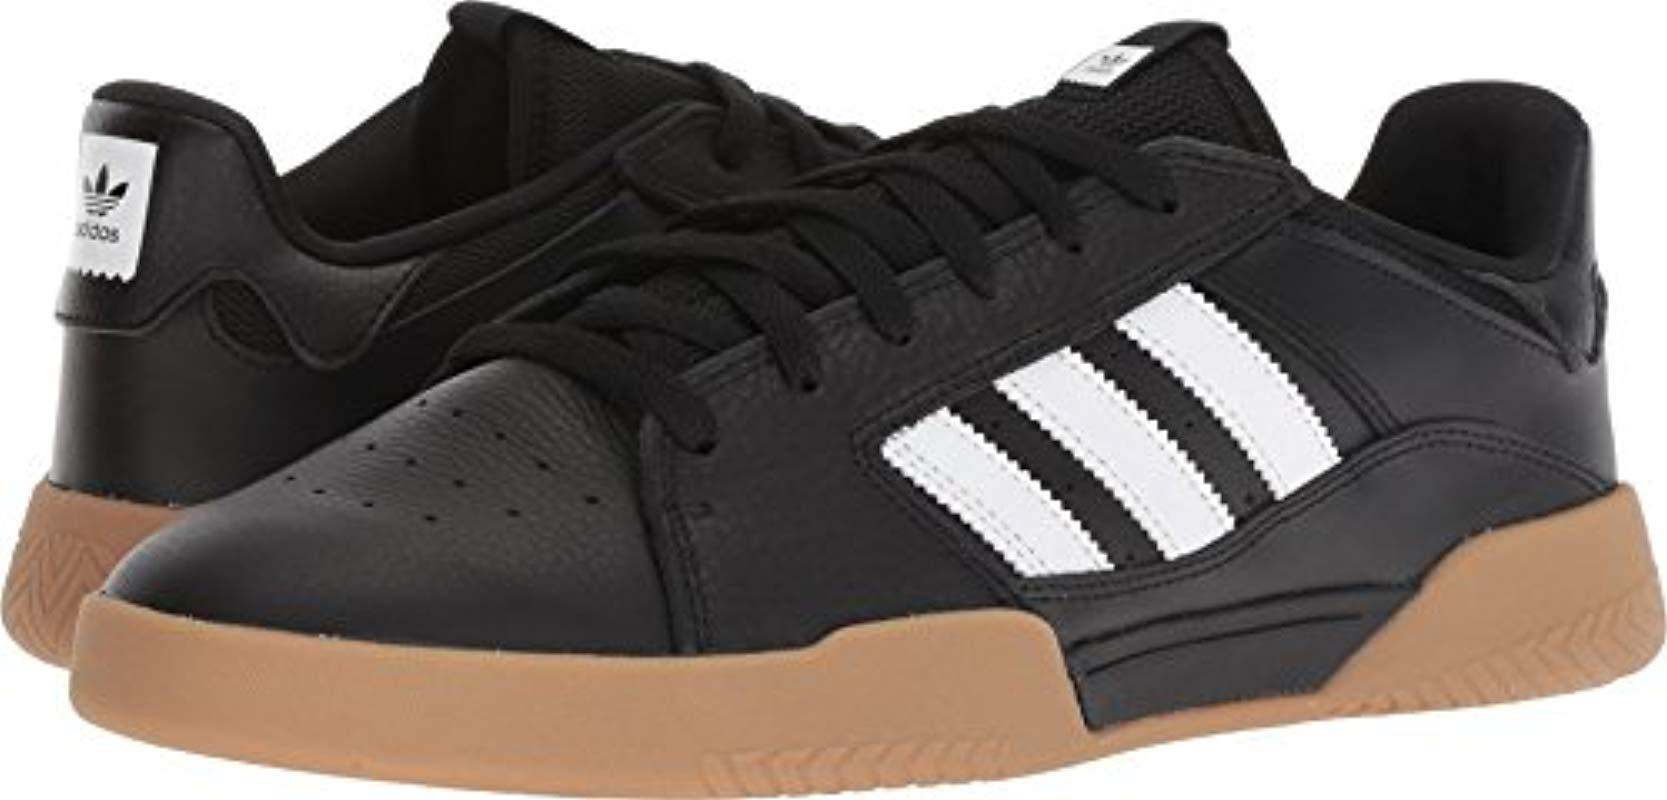 adidas-originals-BlackWhiteGum-Vrx-Low-Skate-Shoe.jpeg